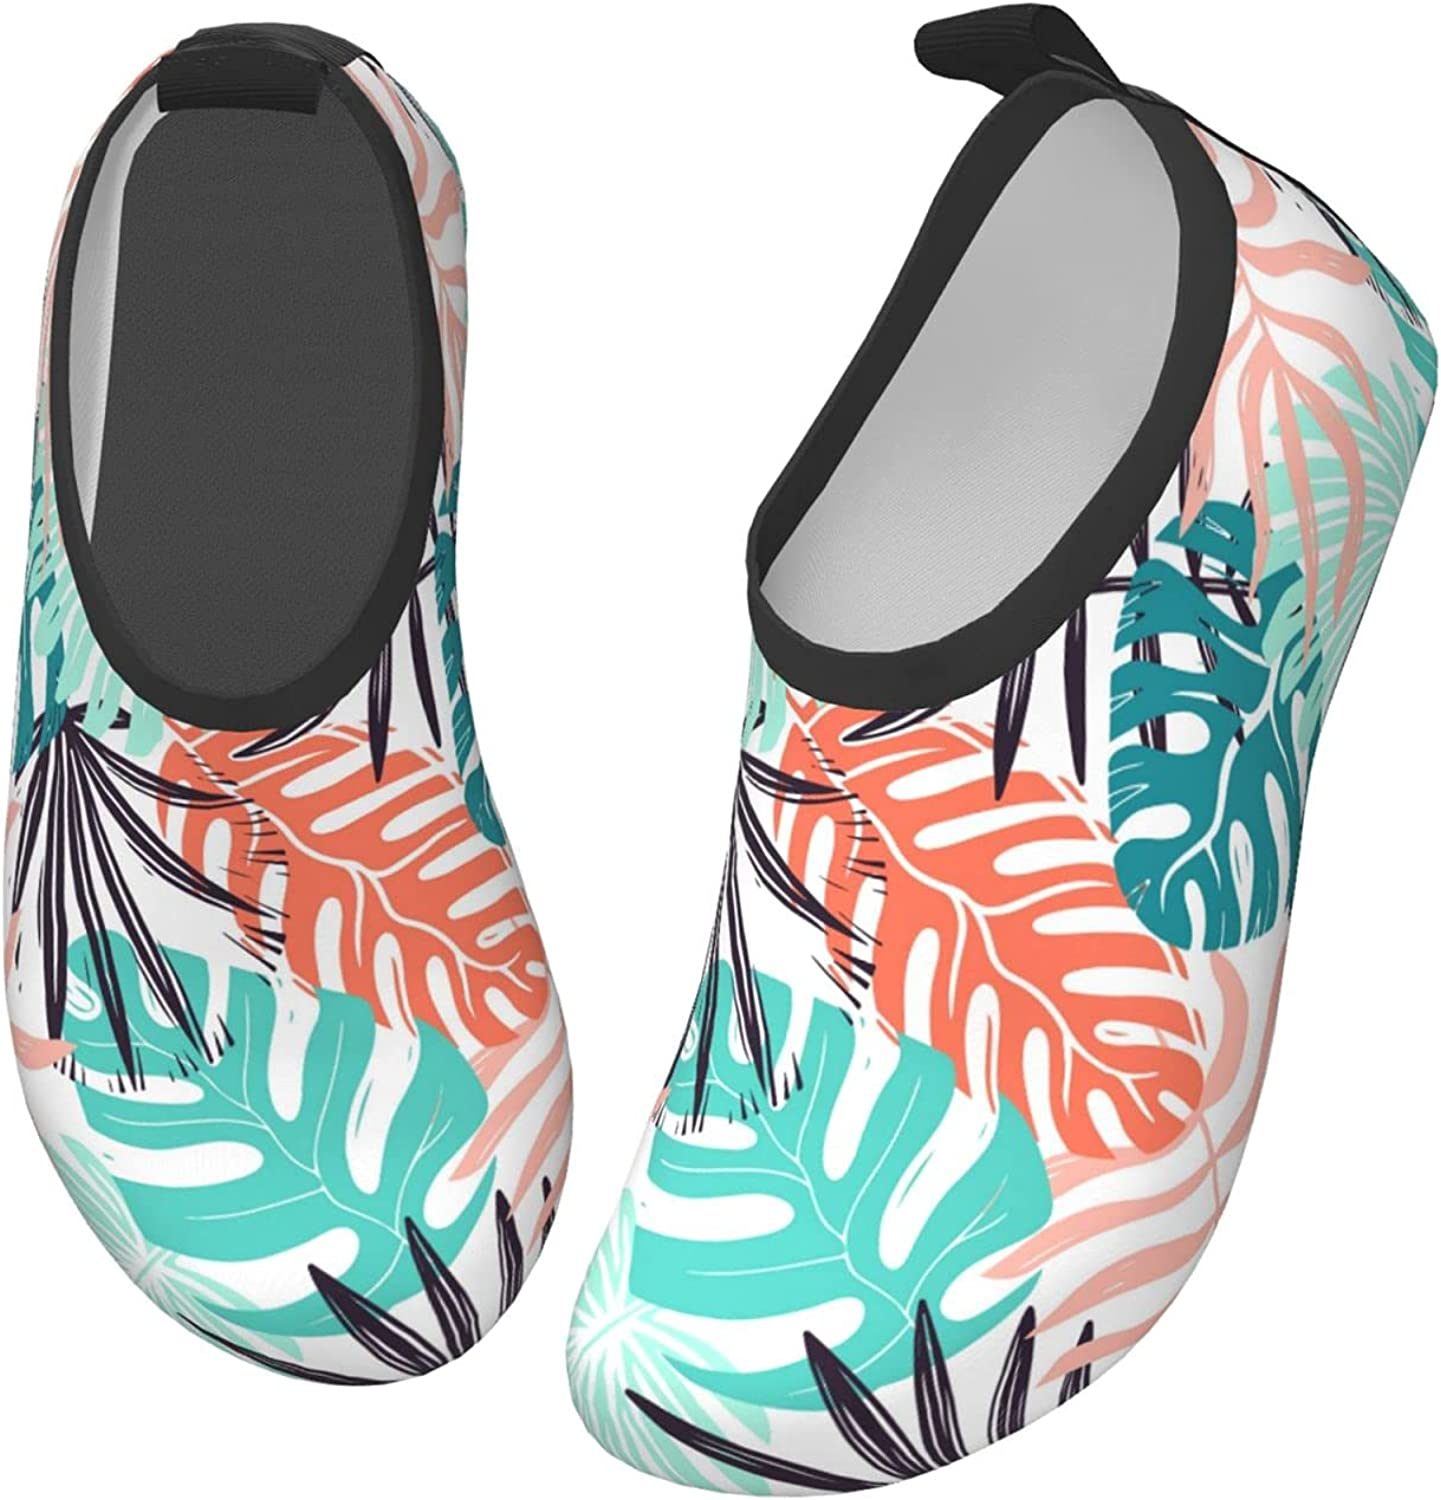 Jedenkuku Leaves Coconut Style Hawaii Summer Children's Water Shoes Feel Barefoot for Swimming Beach Boating Surfing Yoga